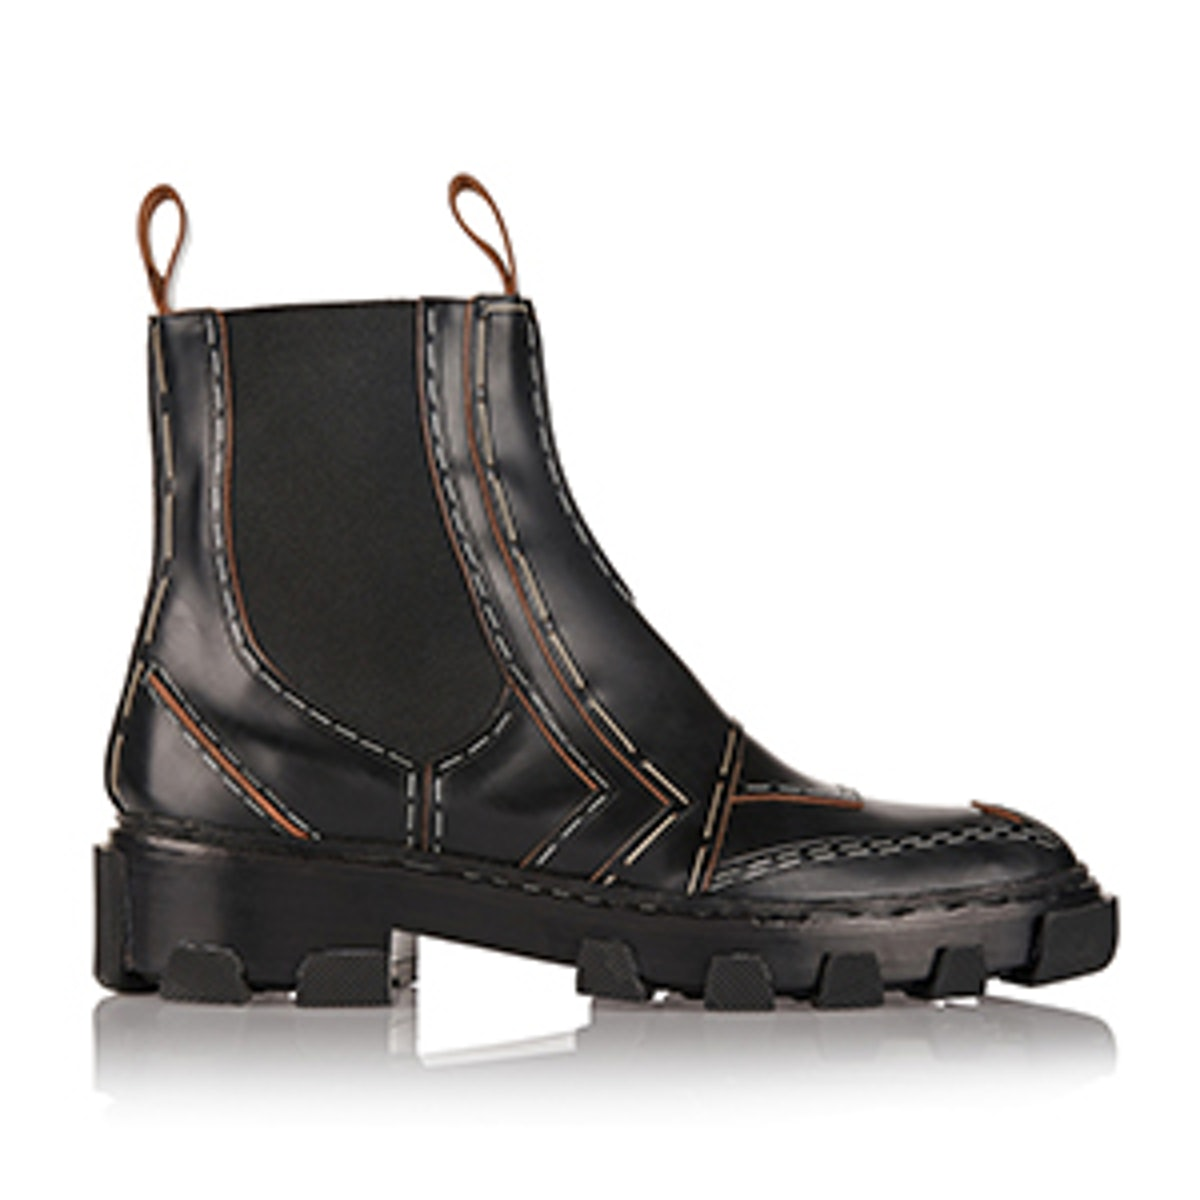 Topstitch Leather Chelsea Boots